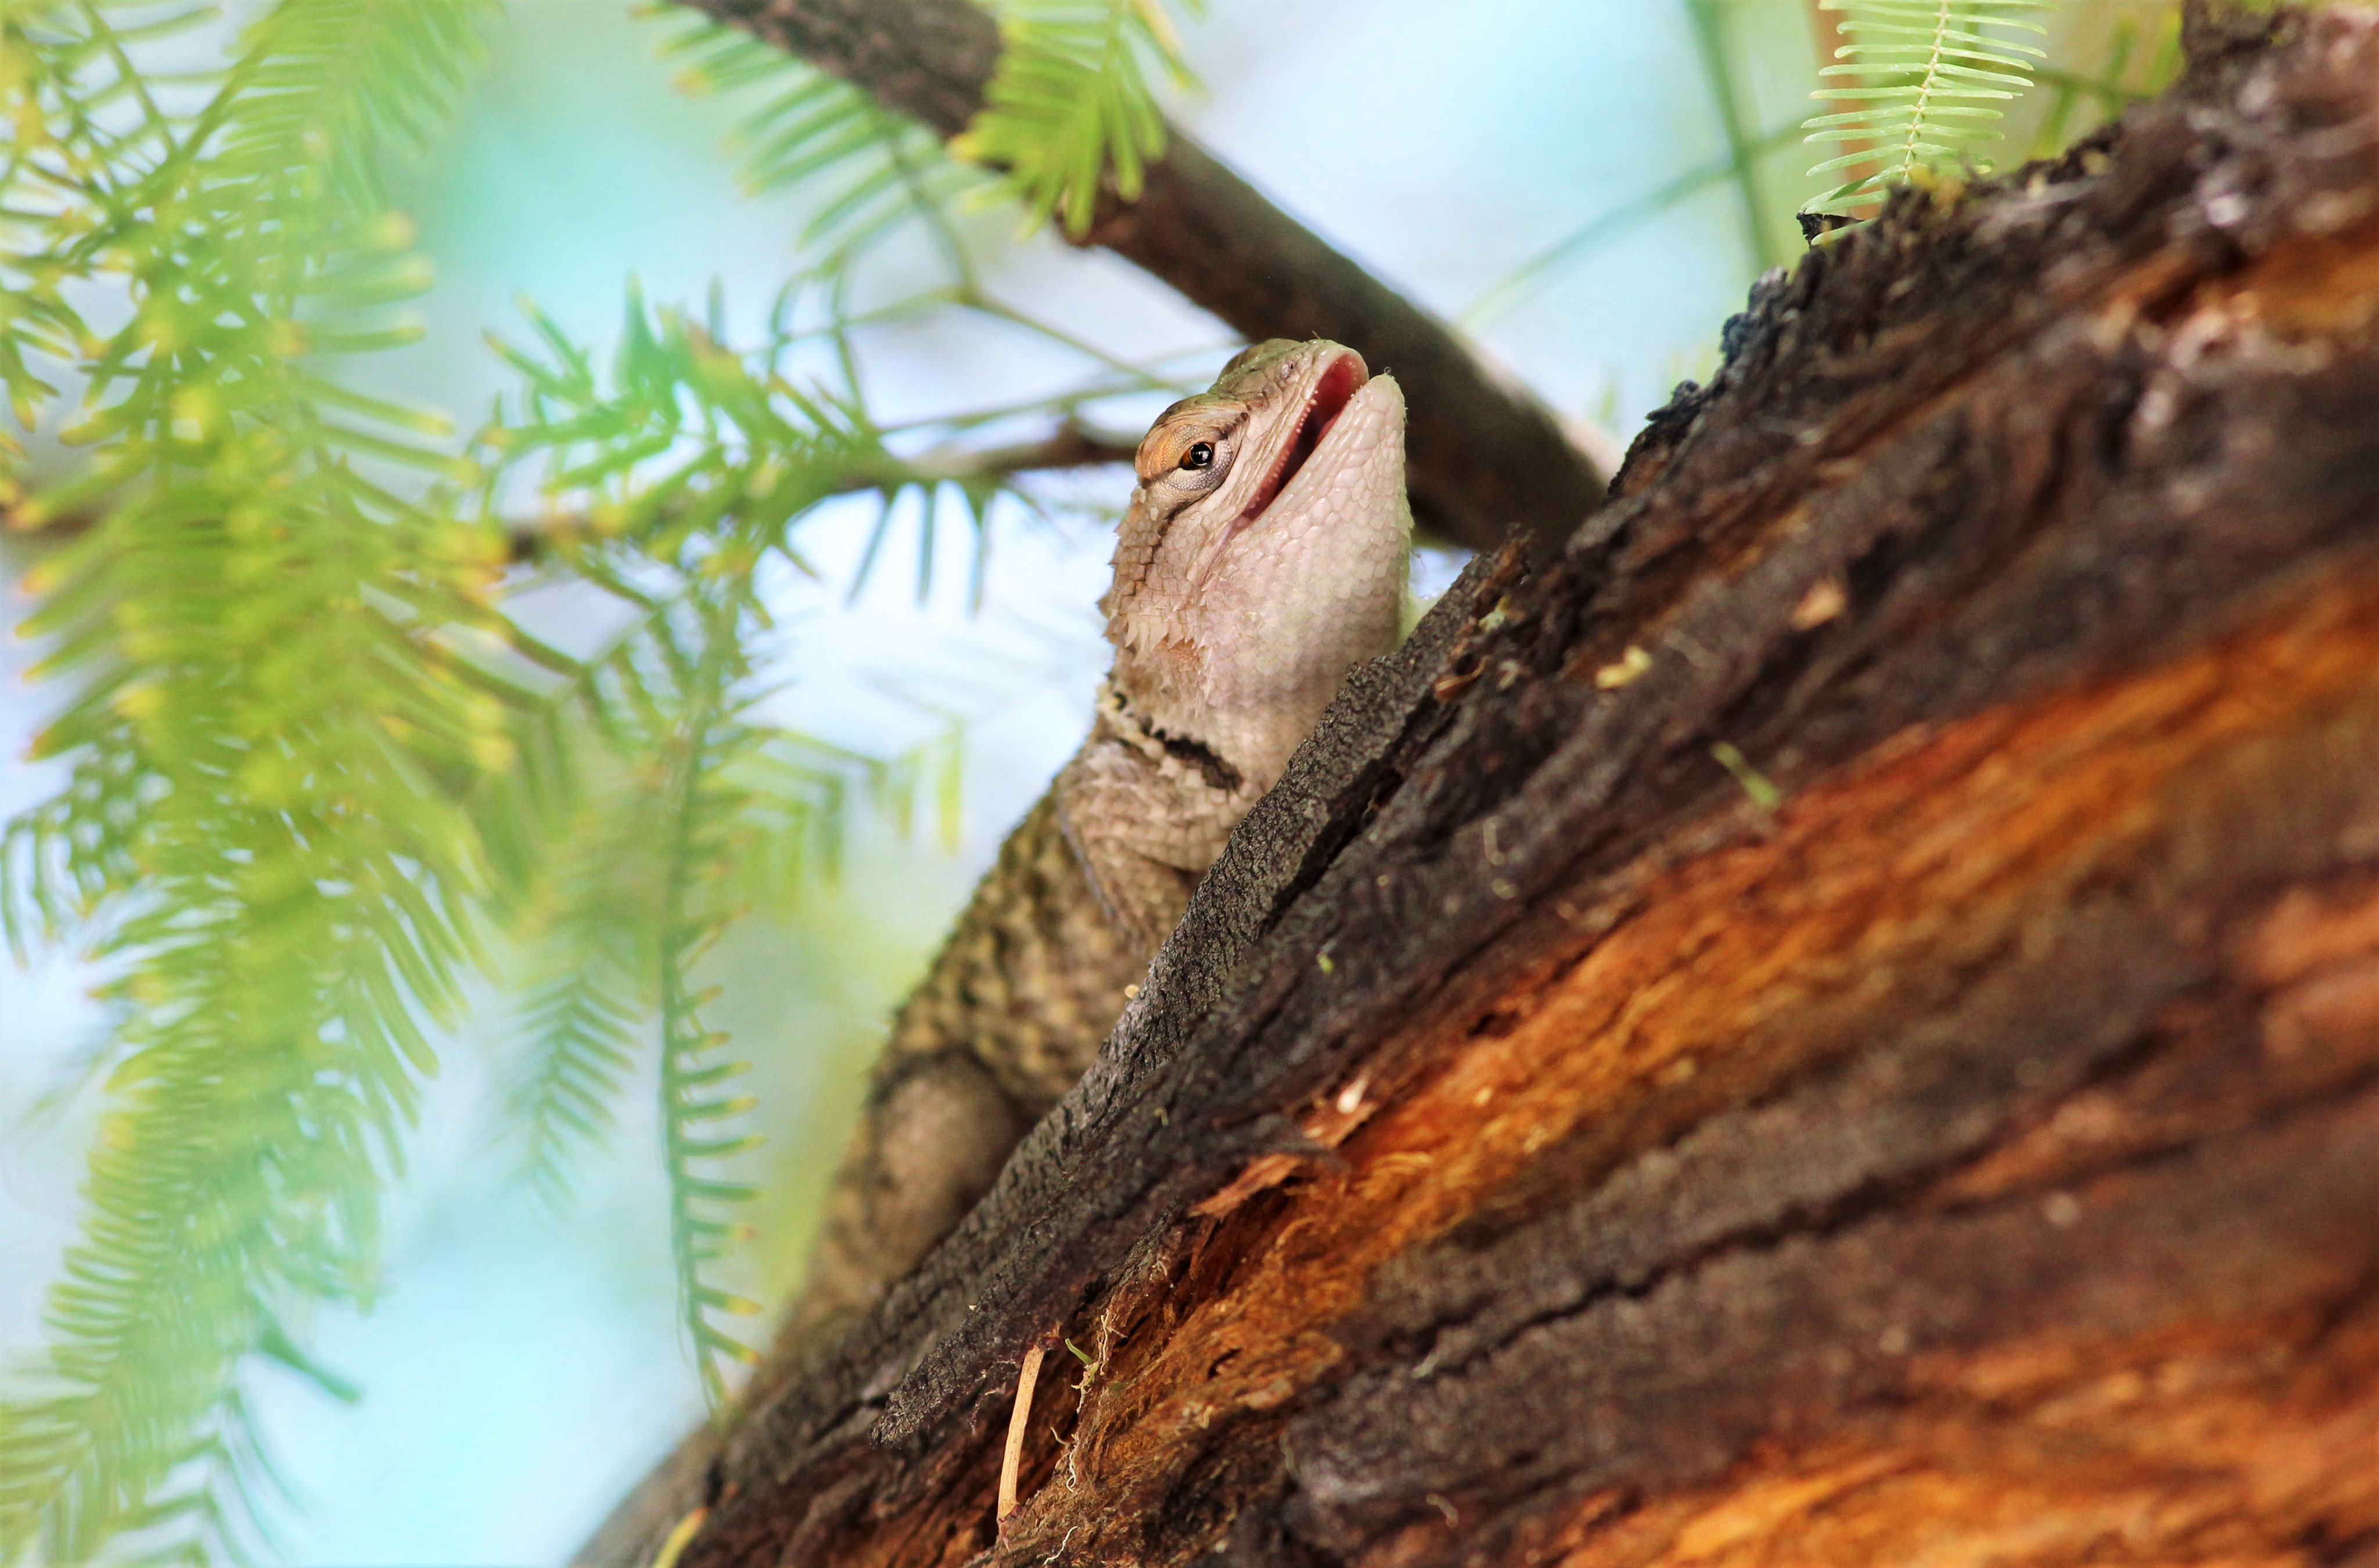 112427 download wallpaper Animals, Lizard, Gecko, Animal, Branch screensavers and pictures for free